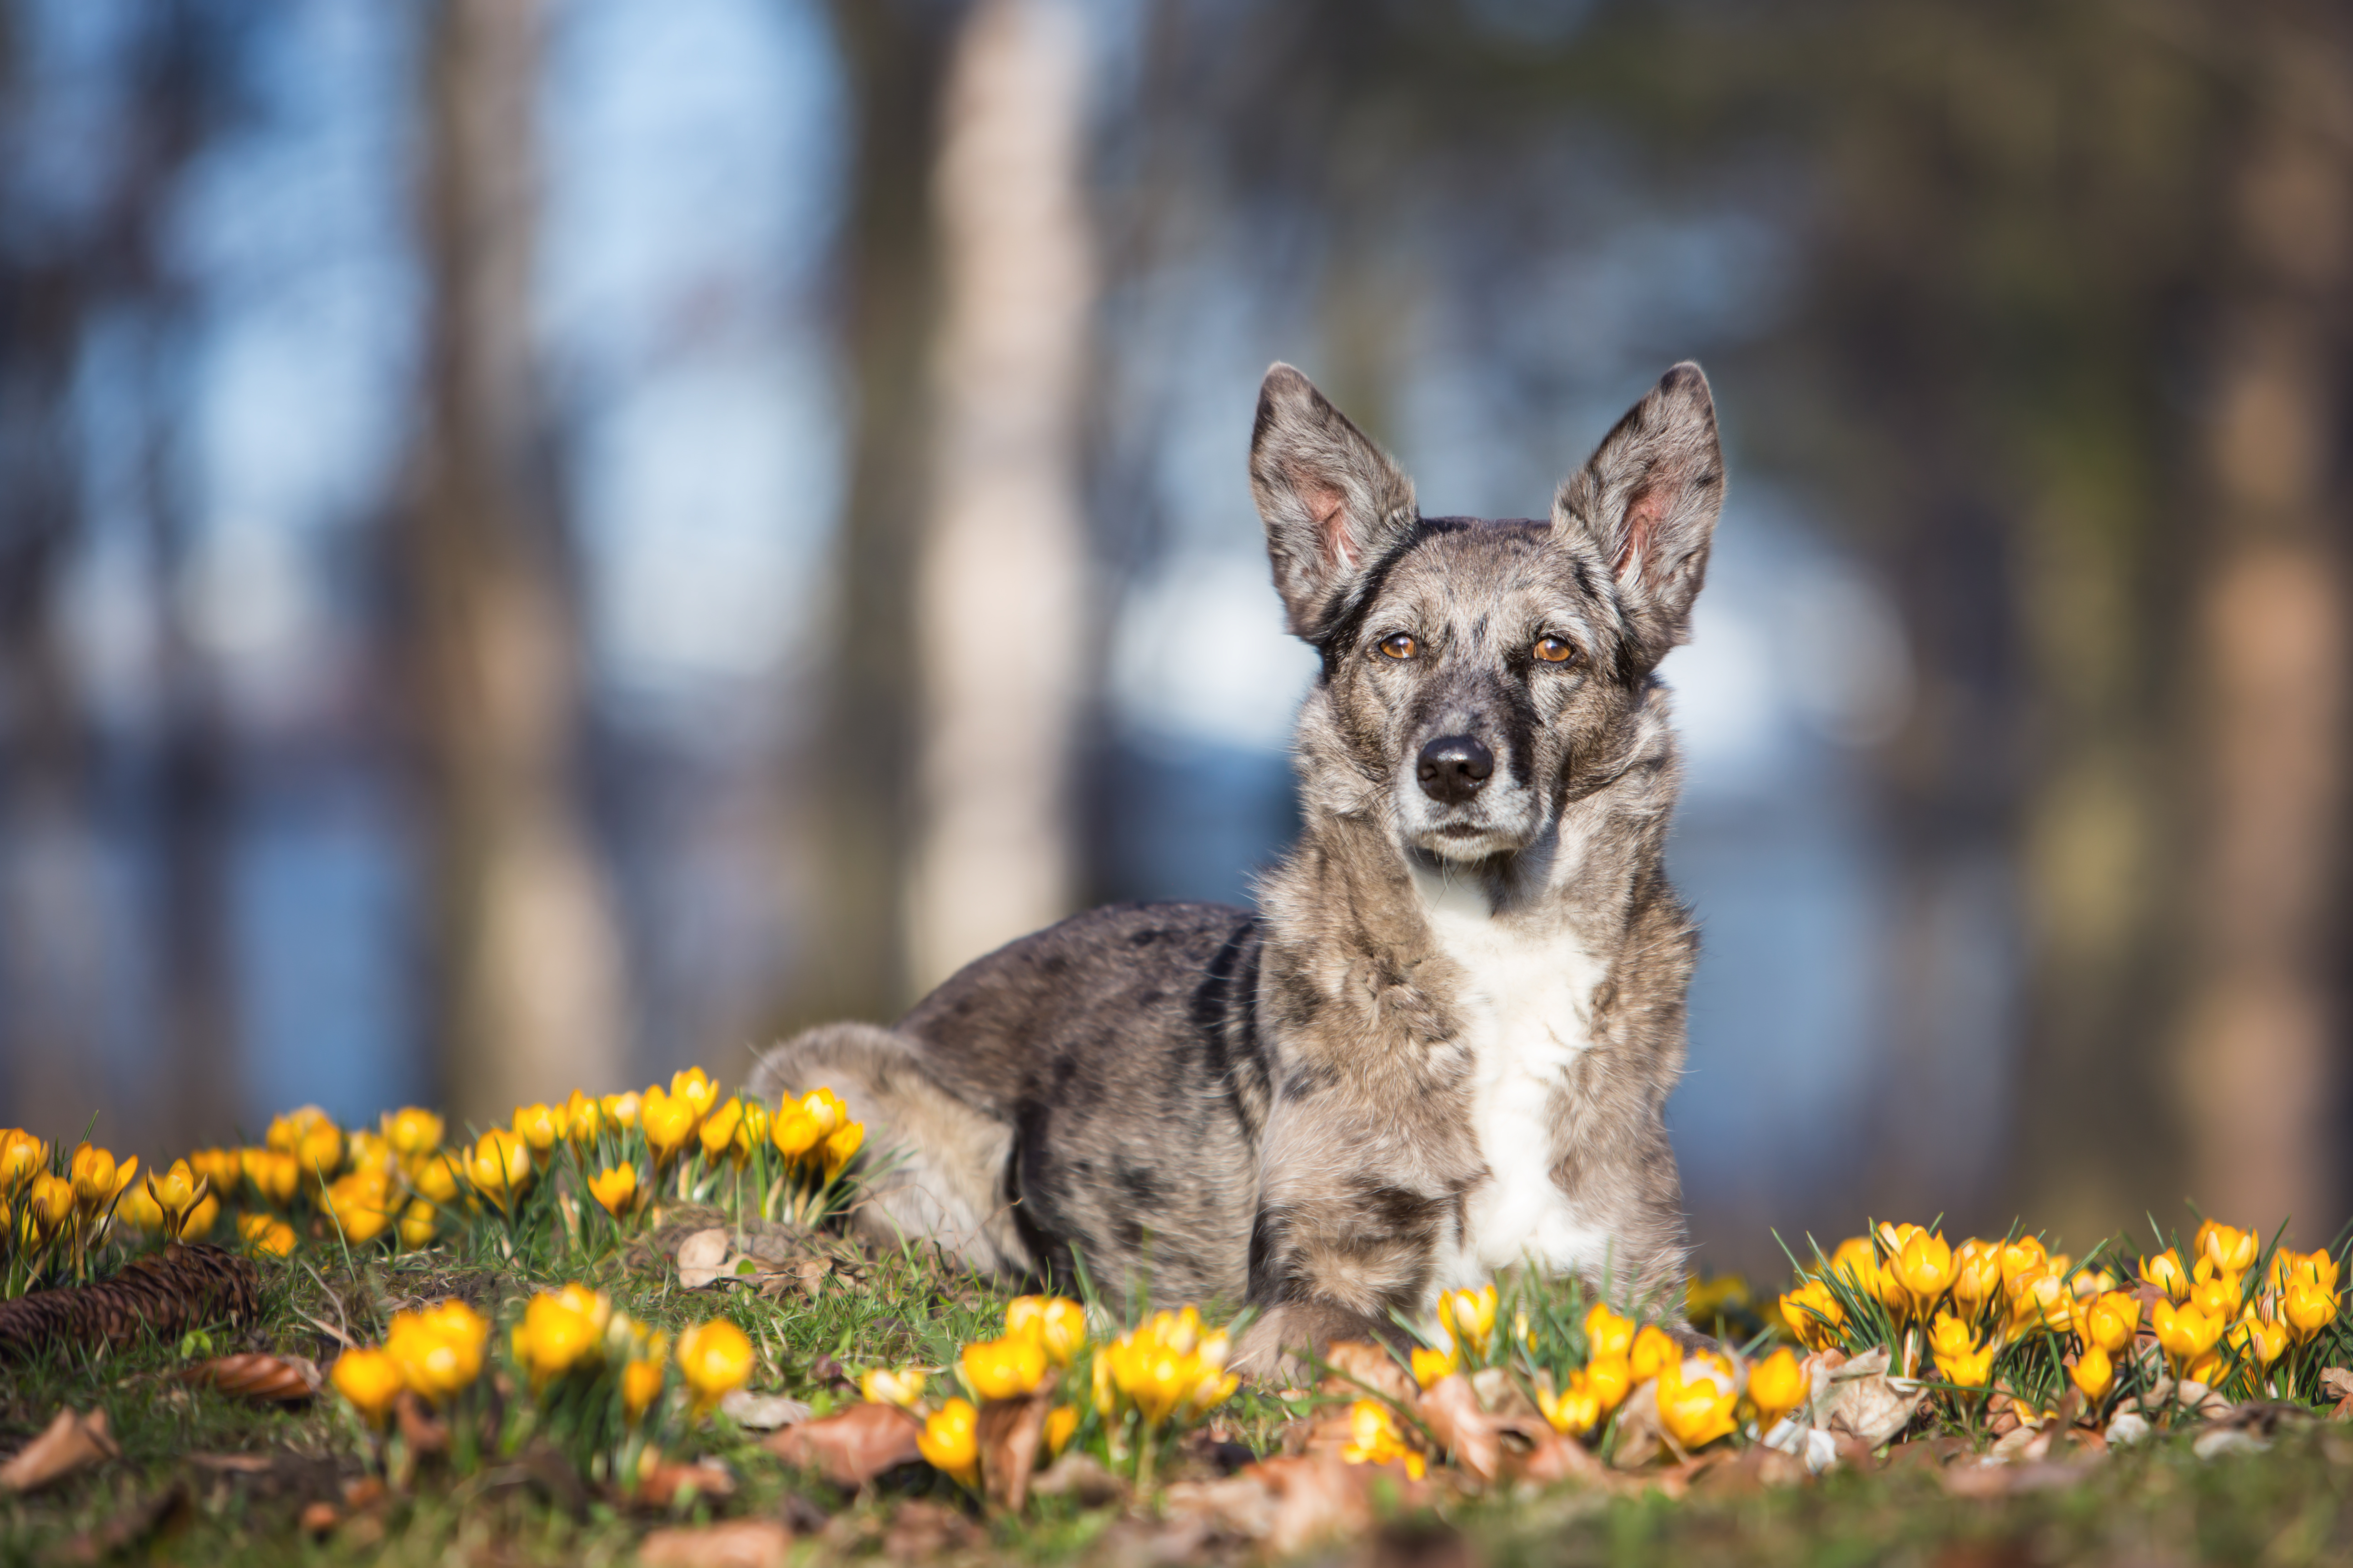 FotoShooting Tiere